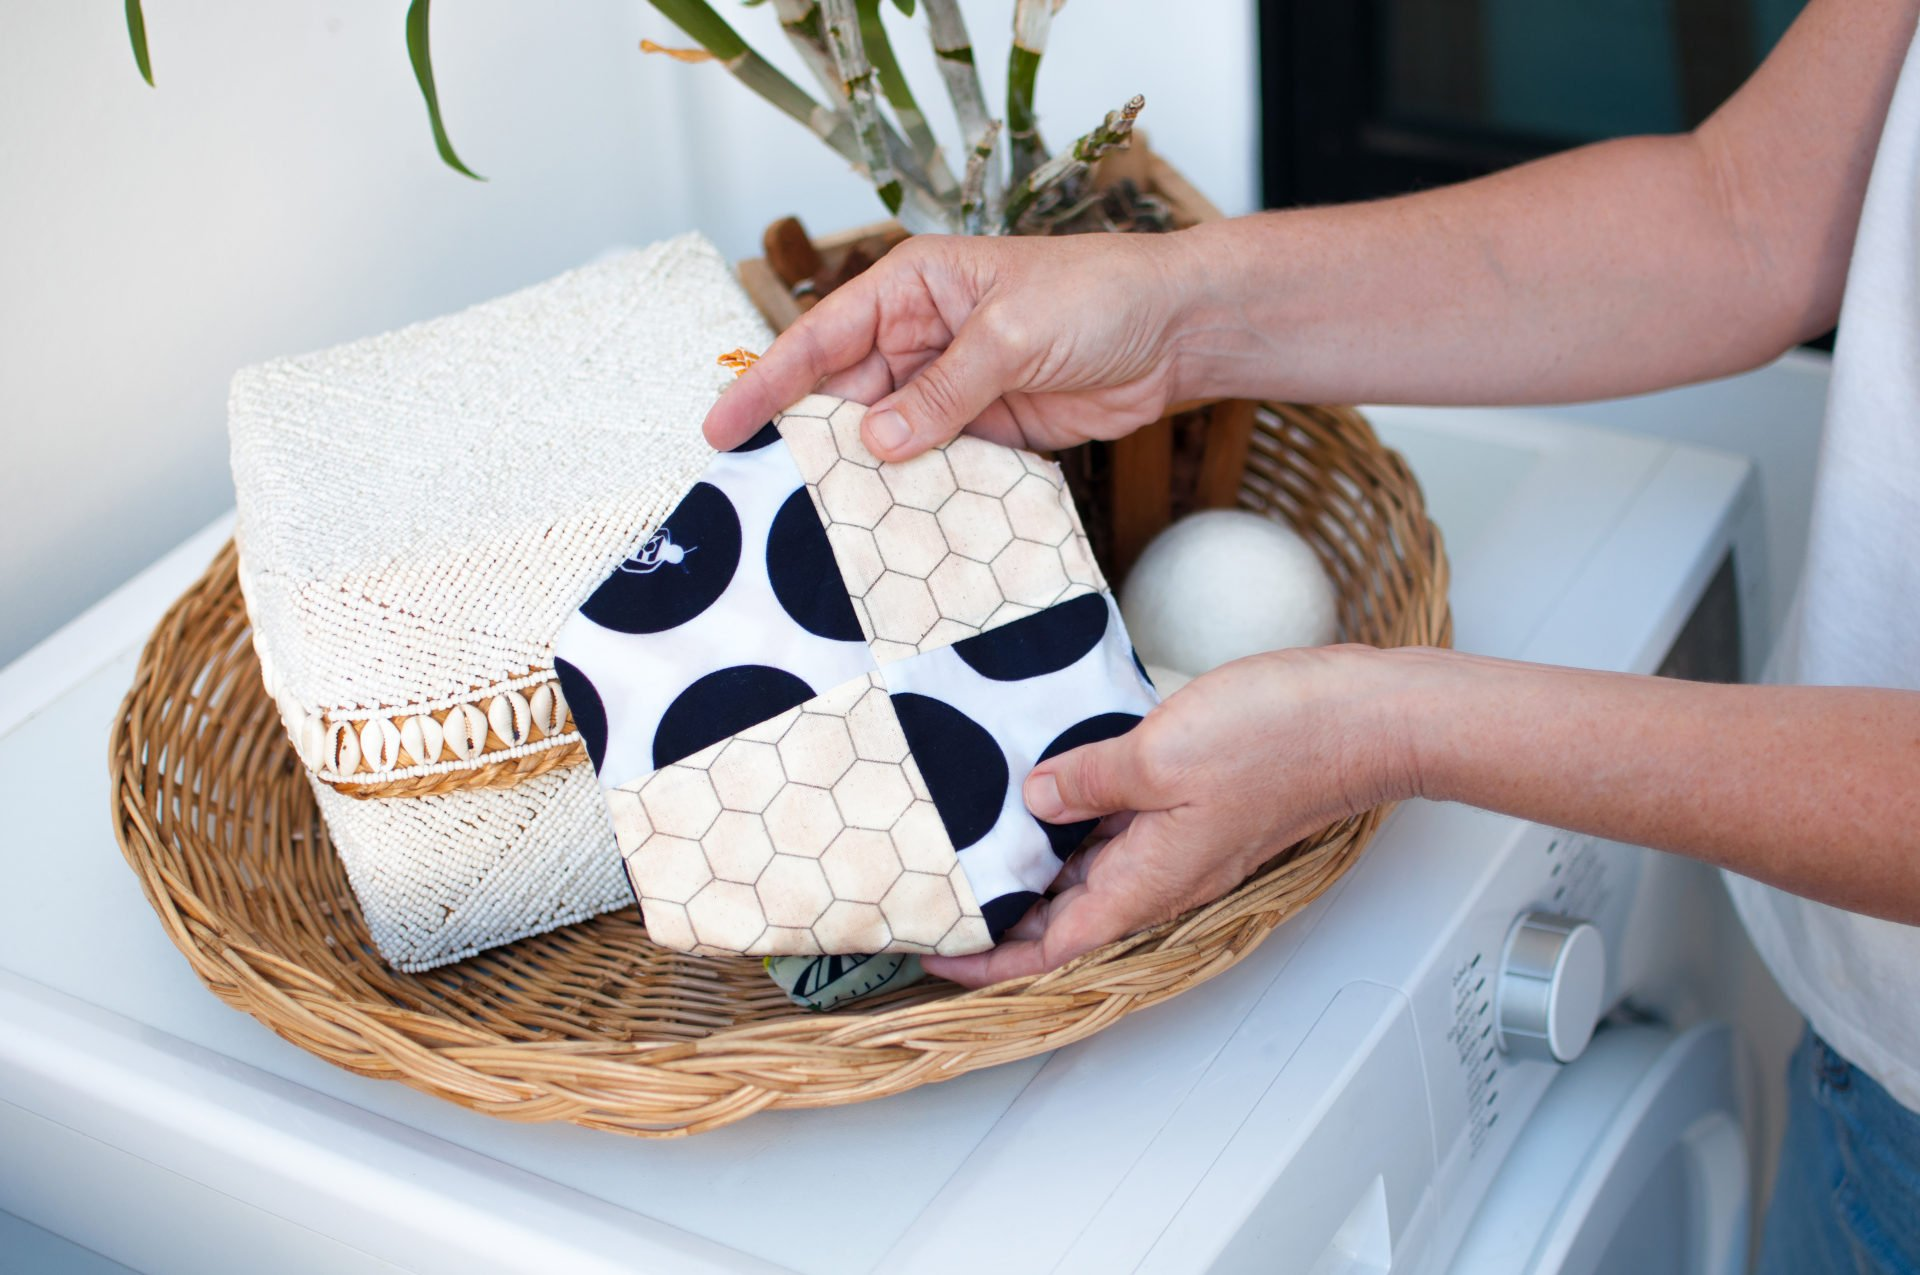 Hexawash, a Chemical-Free Laundry Detergent Alternative